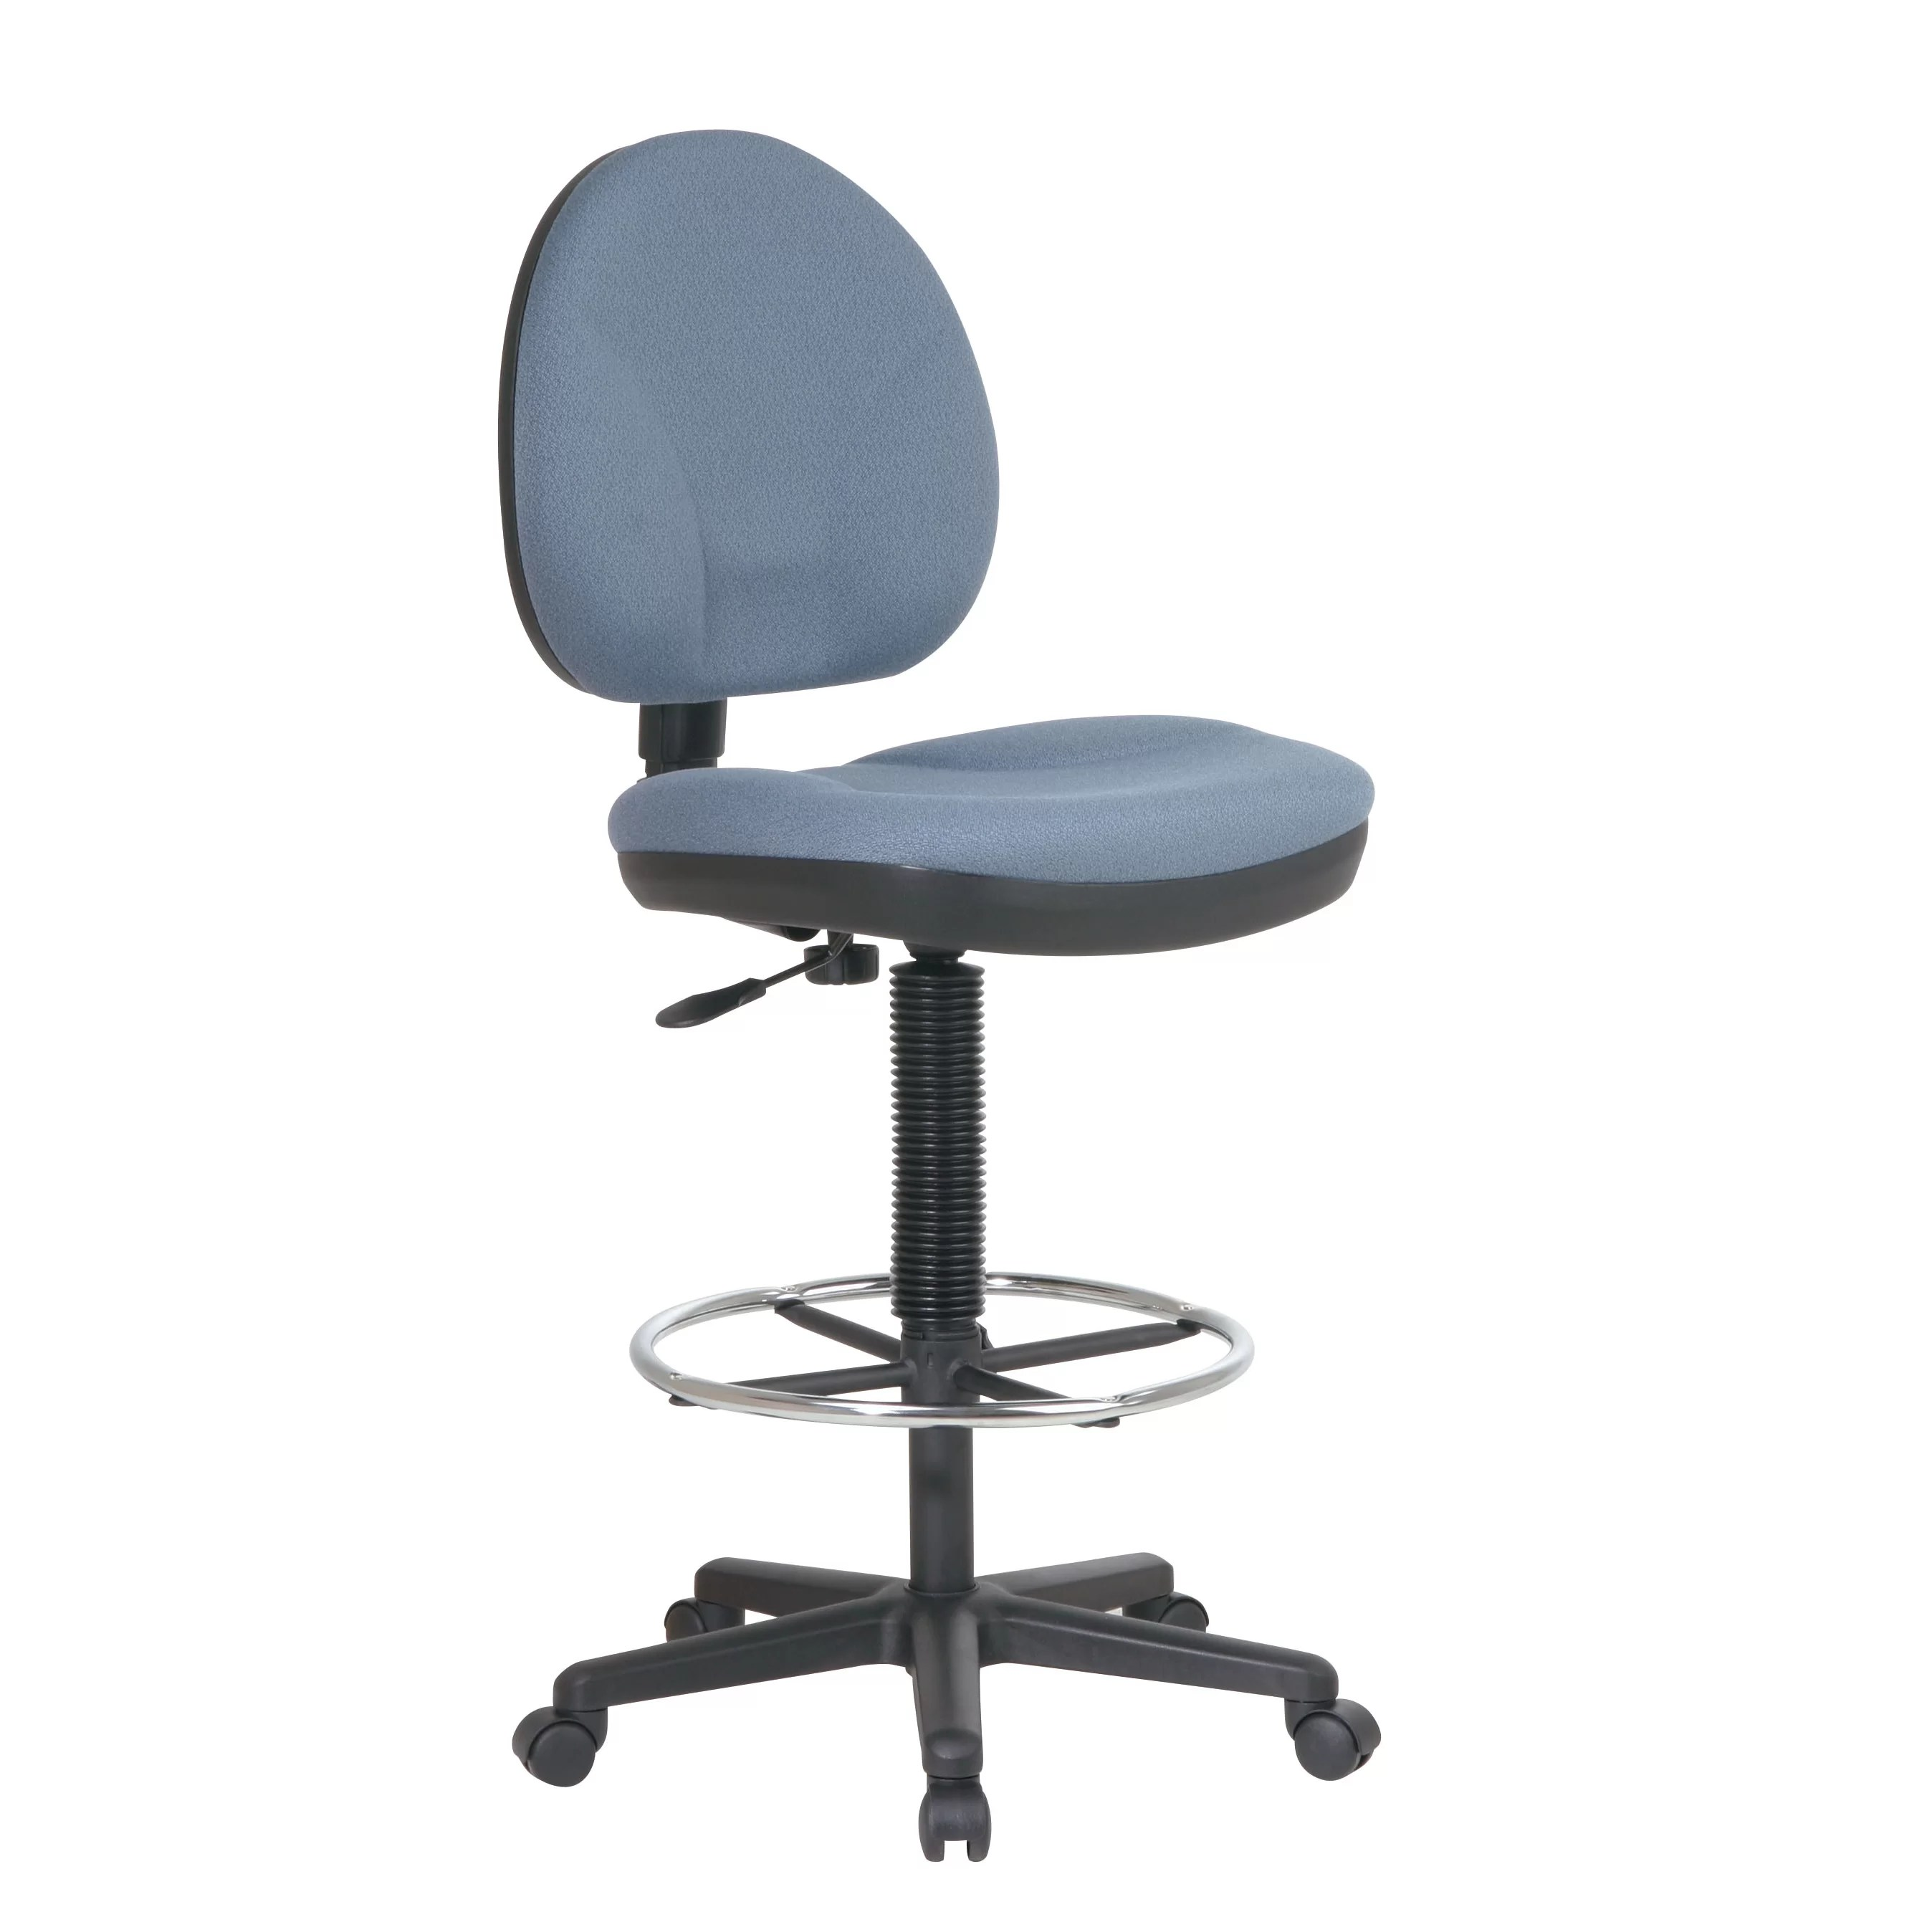 Adjustable Drafting Chair Height Adjustable Drafting Chair With Footrest Wayfair